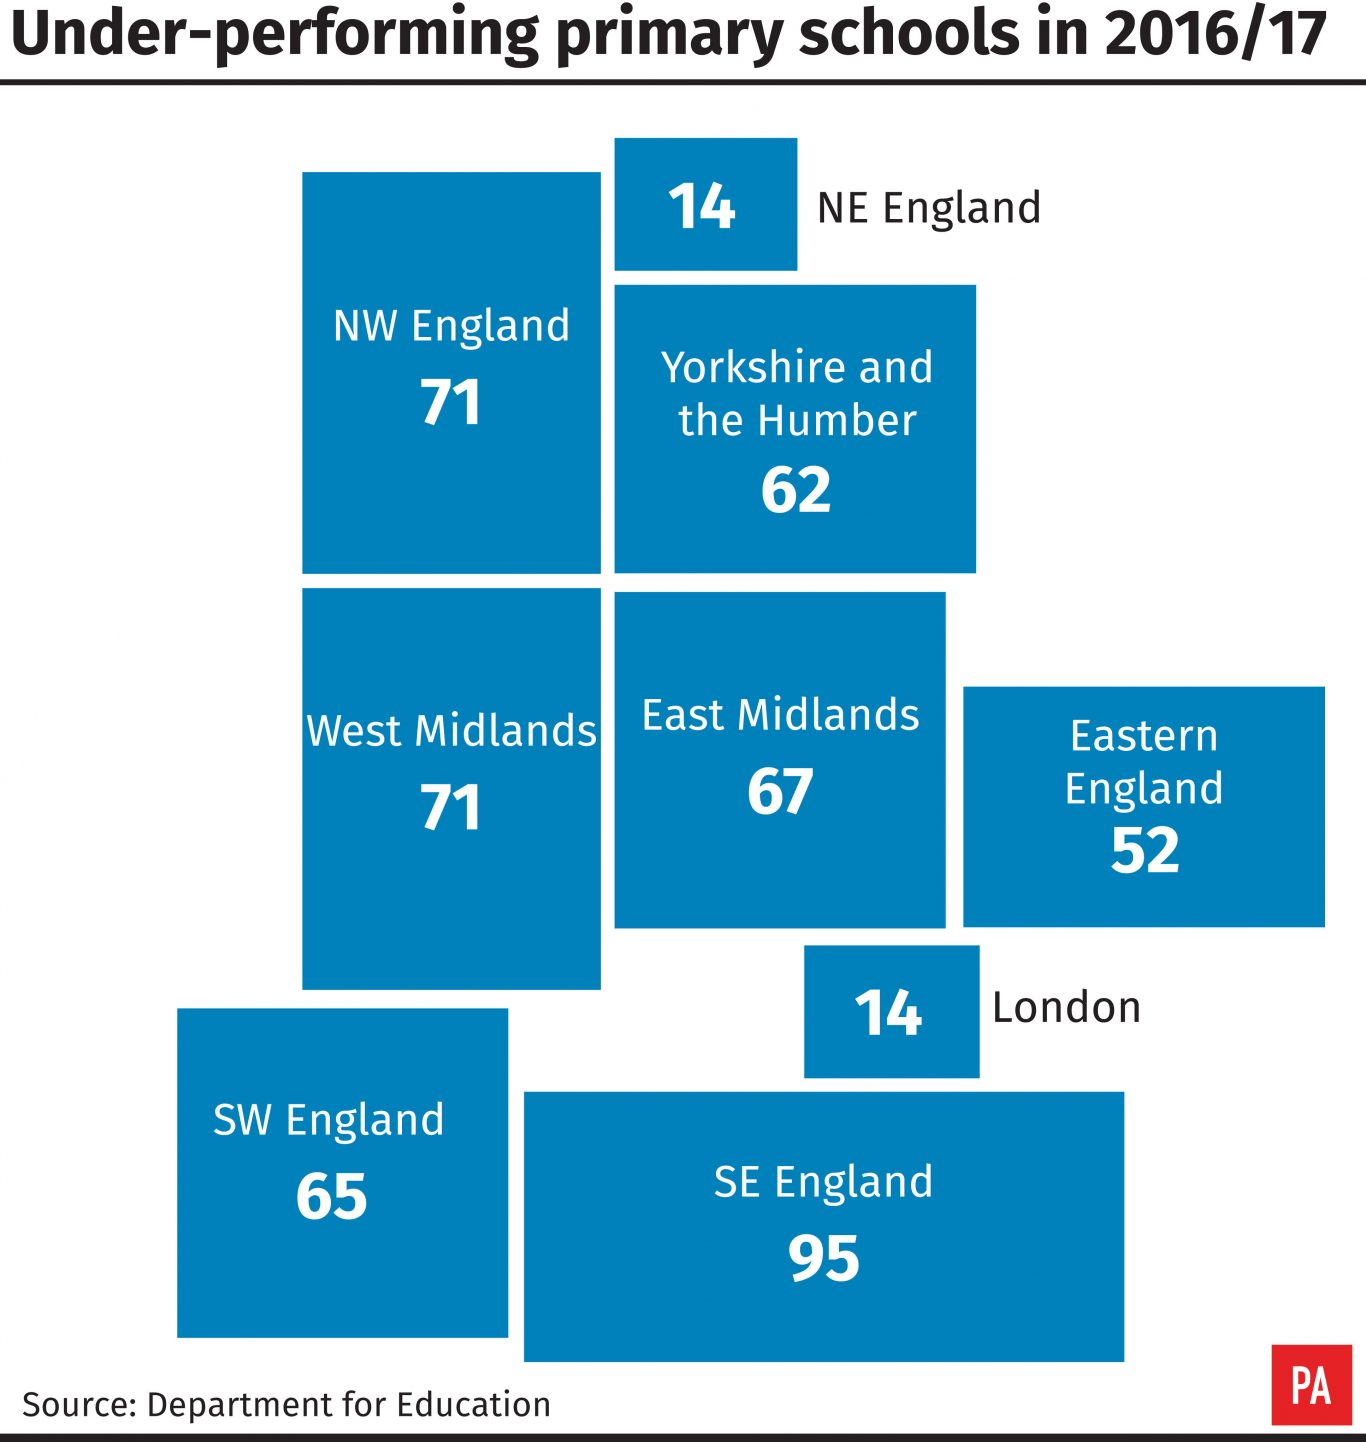 Under-performing primary schools in 2016/17 by English region